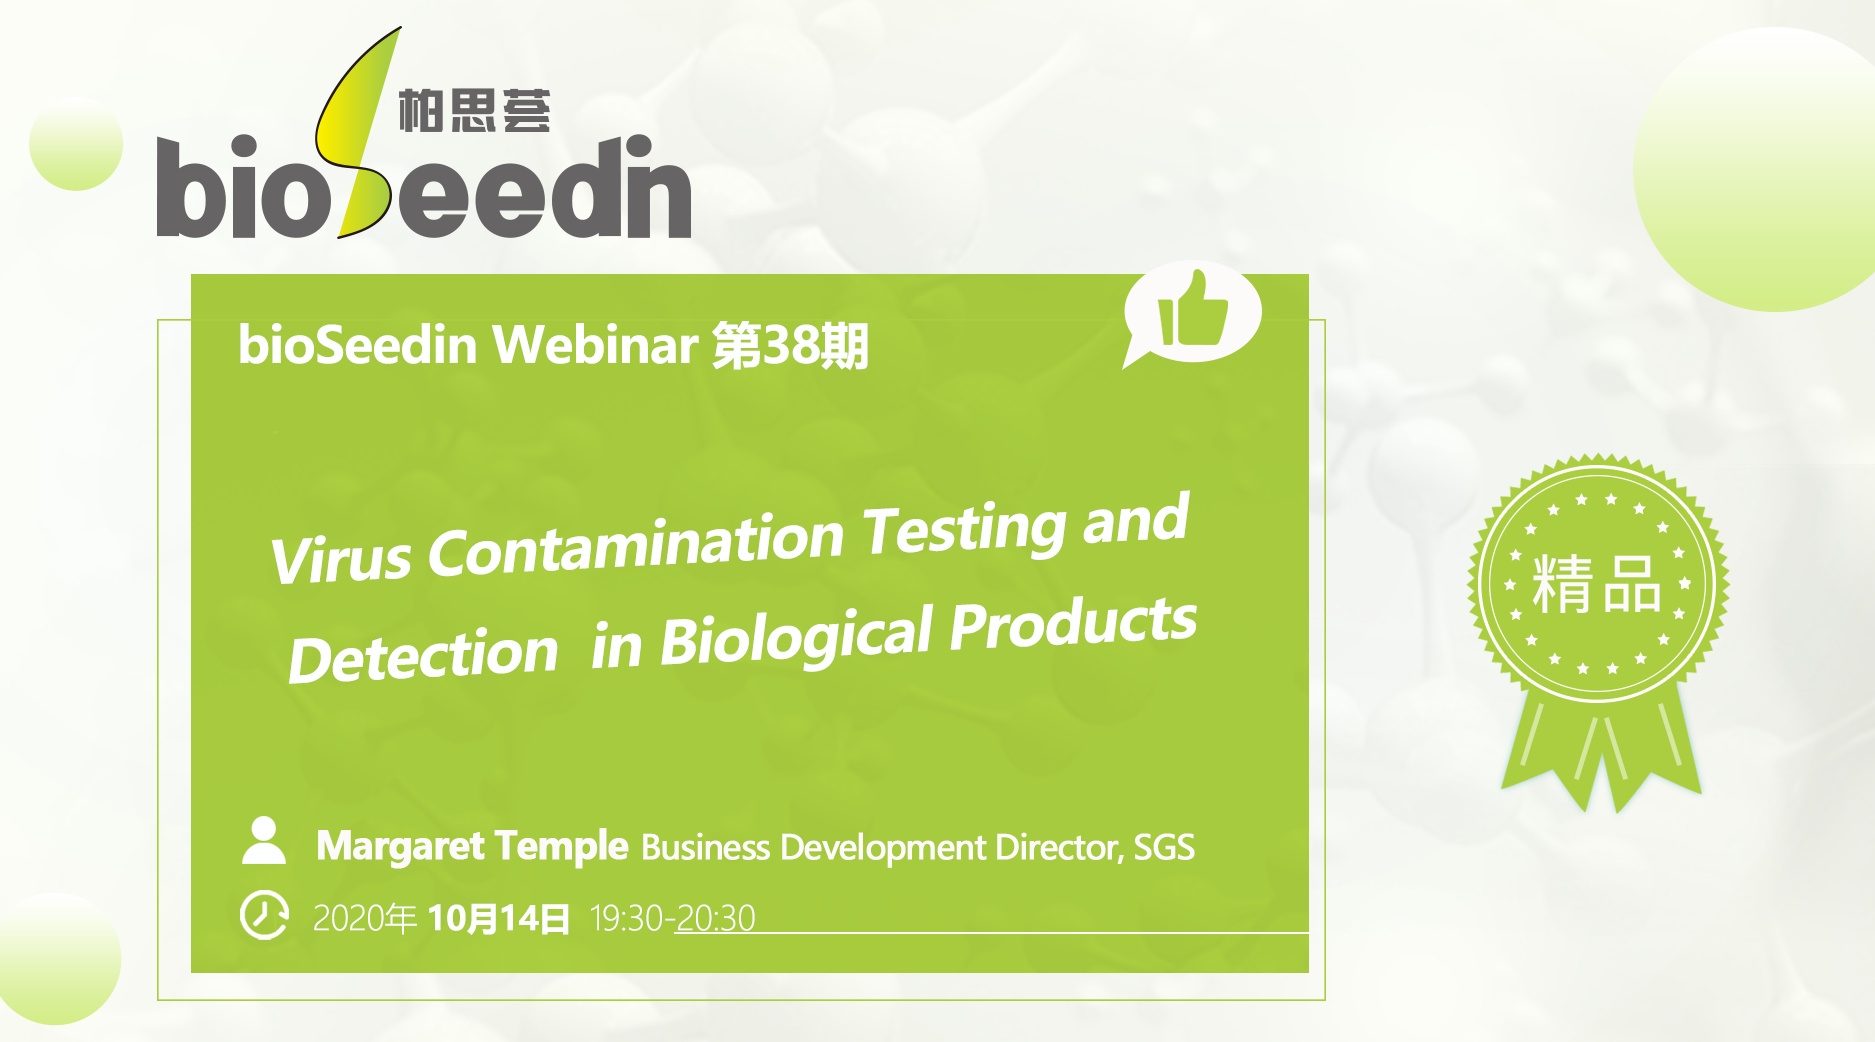 bioSeedin Webinar 第38期《Virus Contamination Testing and Detection in Biologics Products》